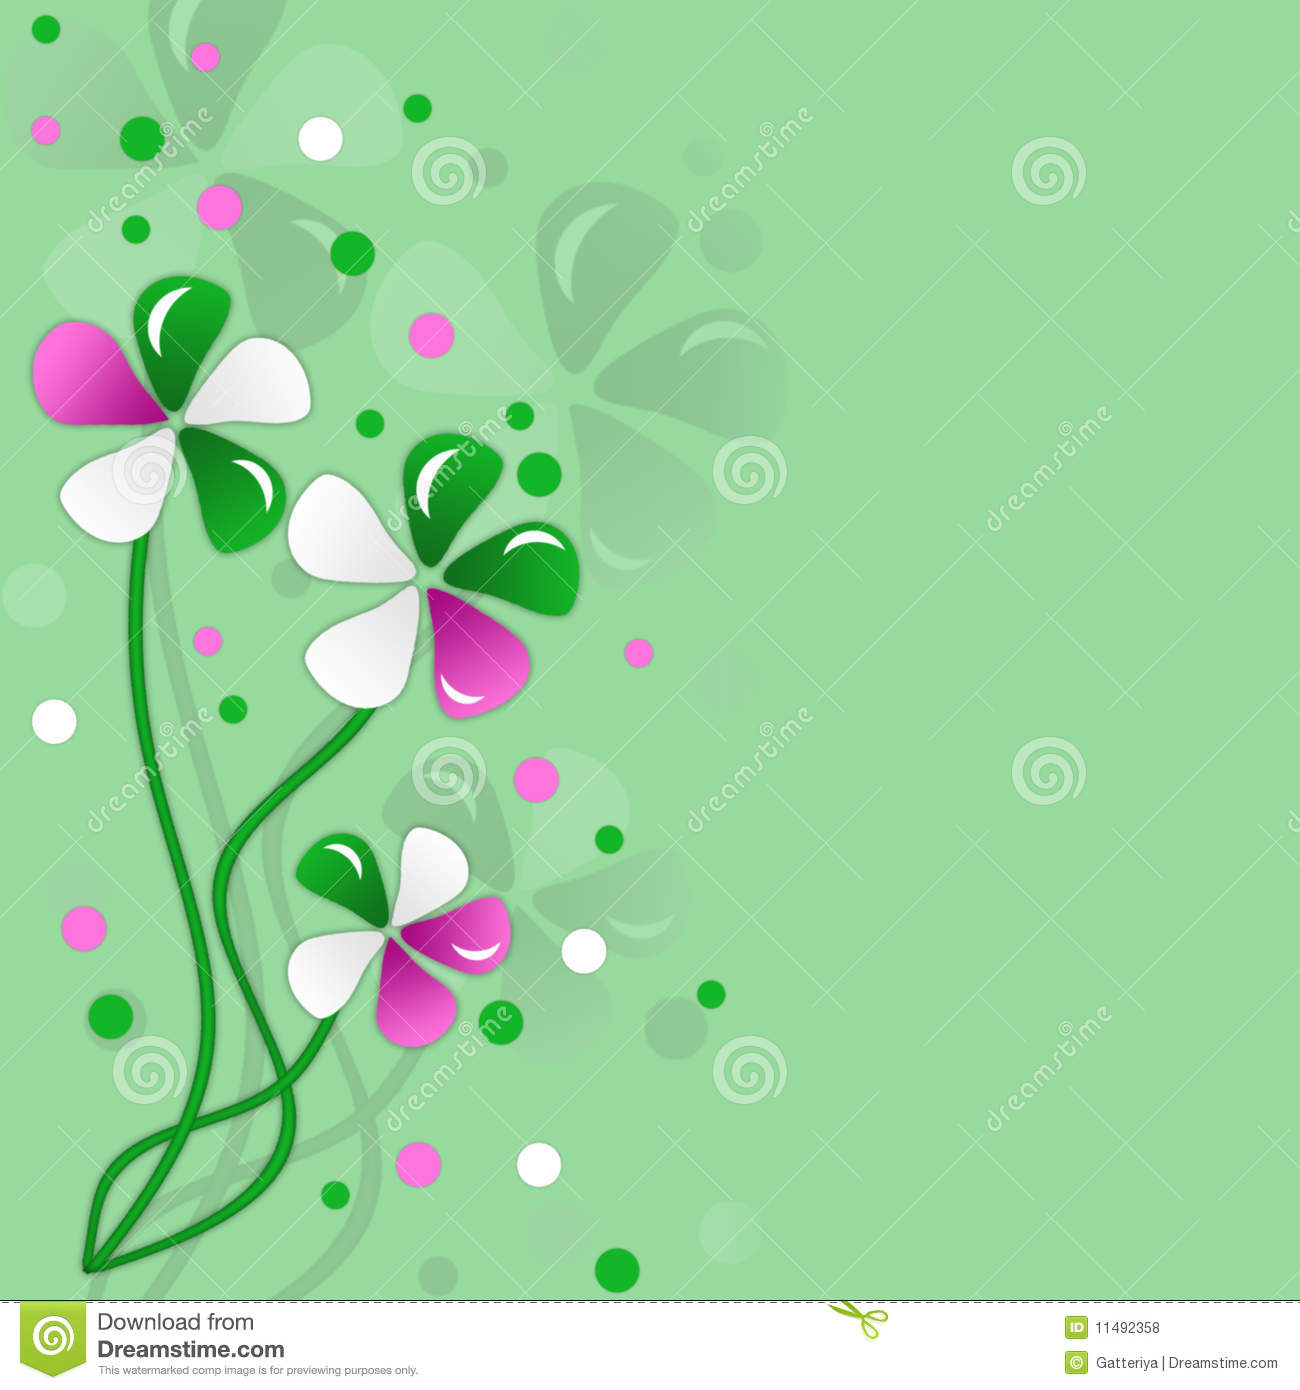 10 Green Colour Flower Images